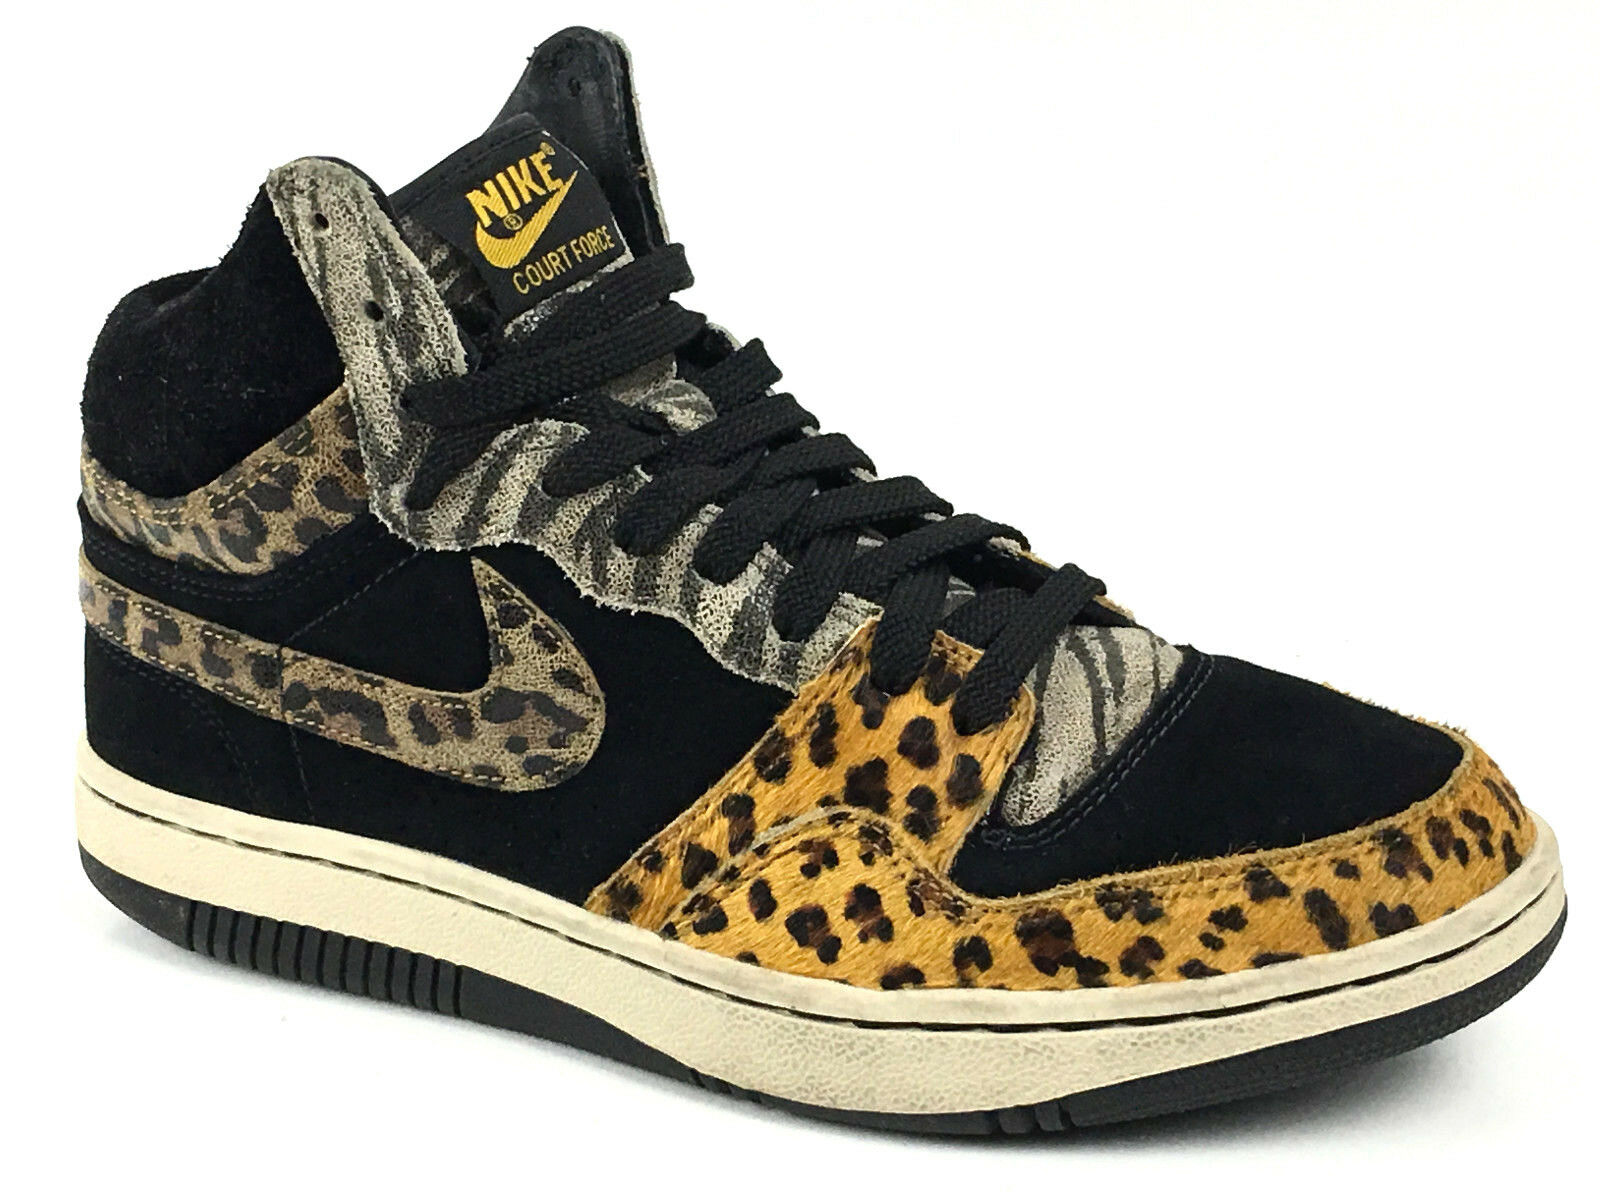 Nike leopardo athletics / moda / casual scarpe taglia